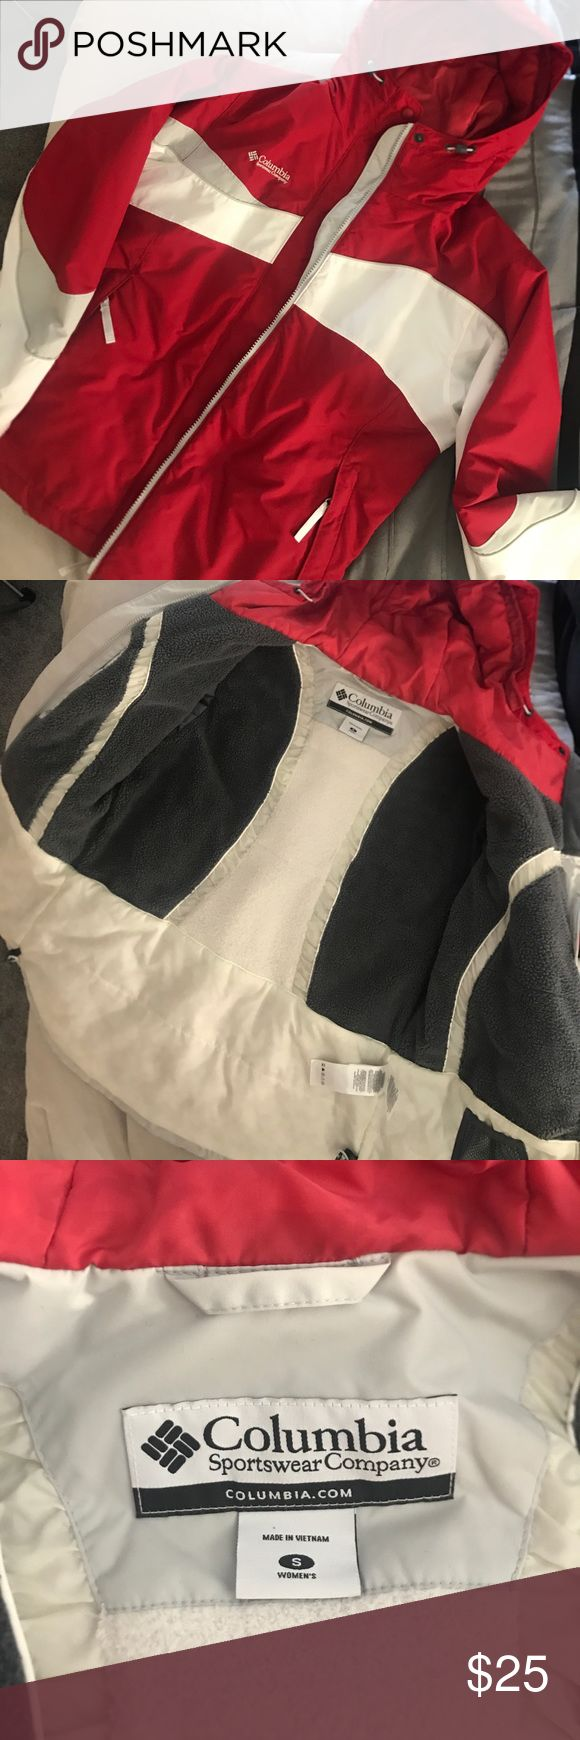 COLUMBIA Snow Jacket Like new, Columbia blazing star interchange snow jacket with hood. Fleece lining. Features concealed pockets and adjustable cuffs. Columbia Jackets & Coats